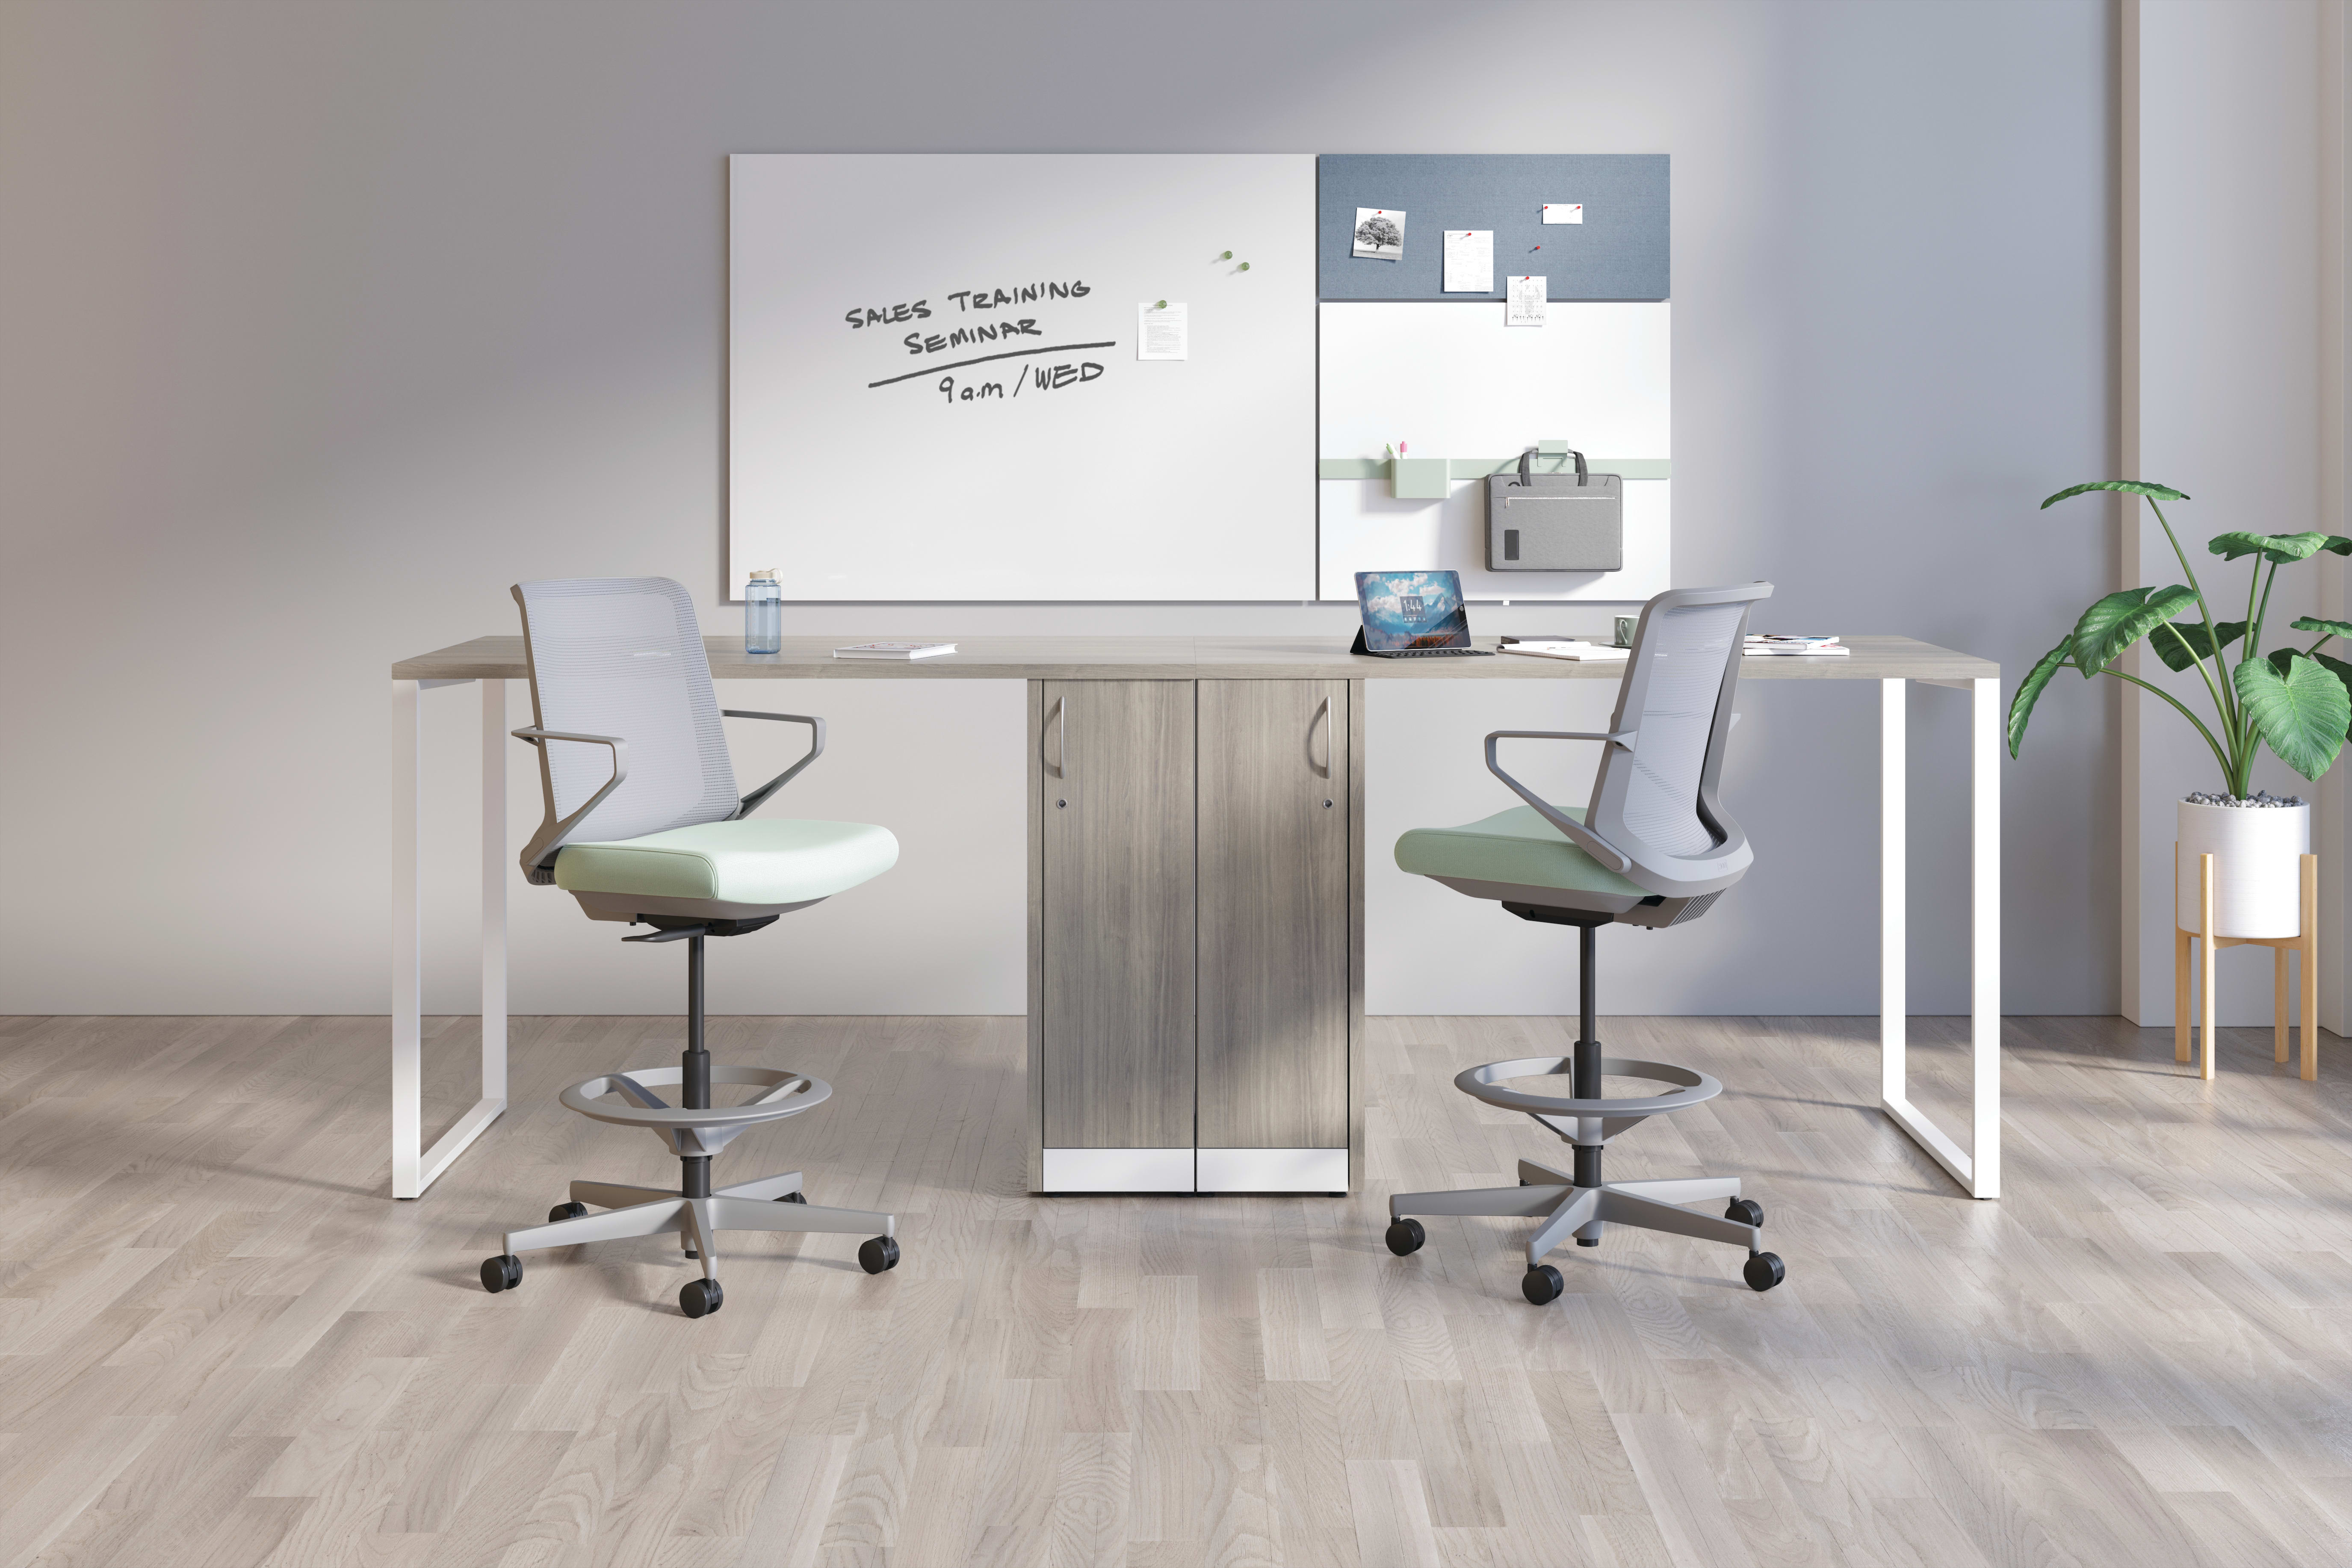 Cliq Stools with Storage Islands and Contain Storage, and Work Wall Tiles.